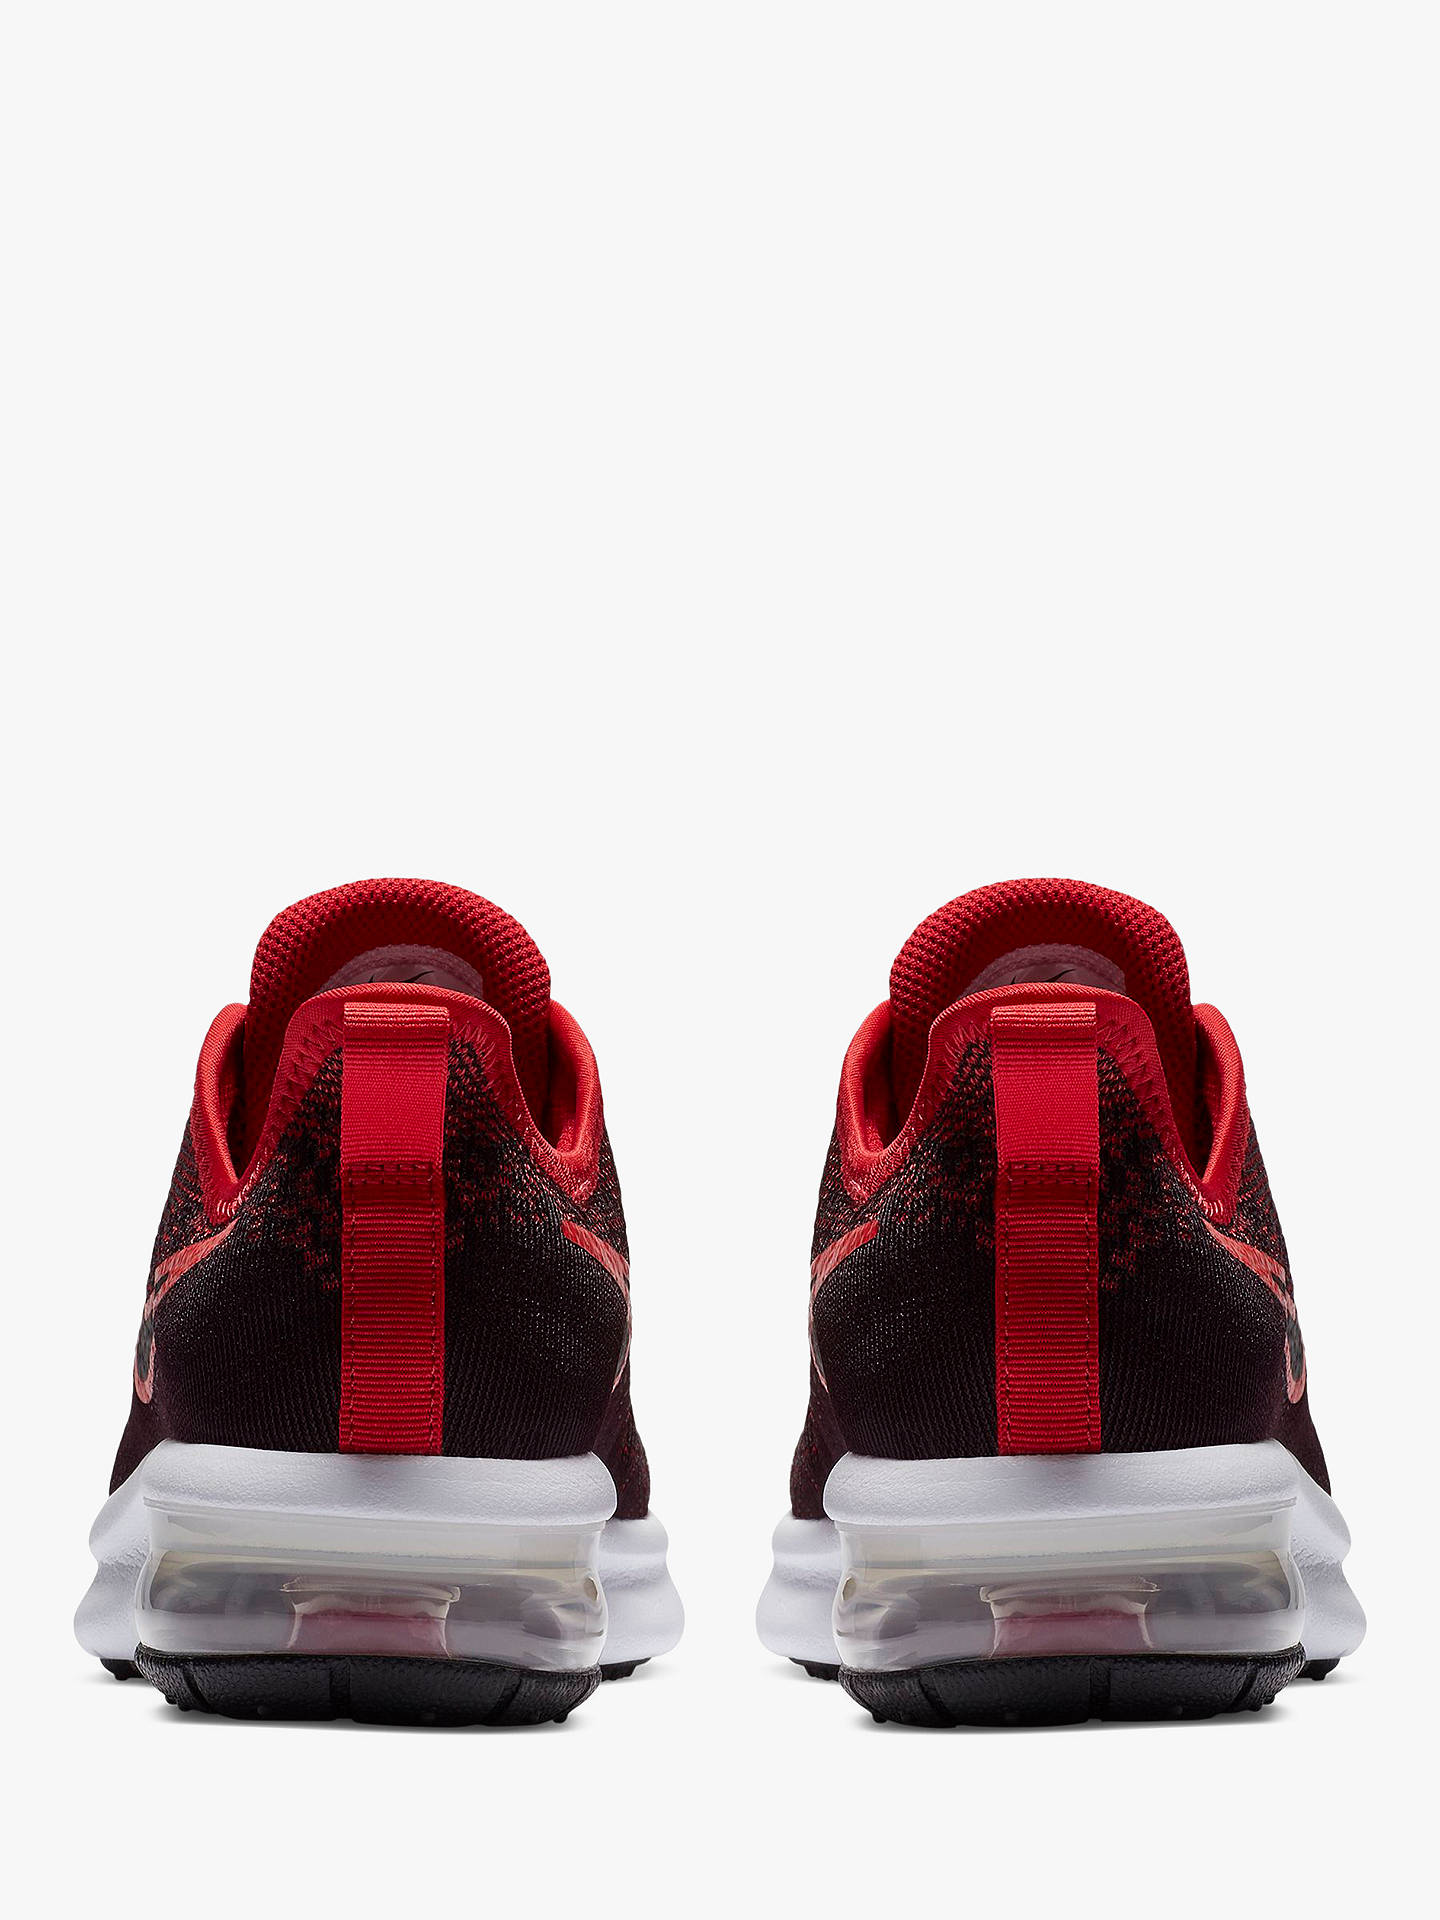 Nike Children's Air Max Sequent 4 Trainers, BlackRed at